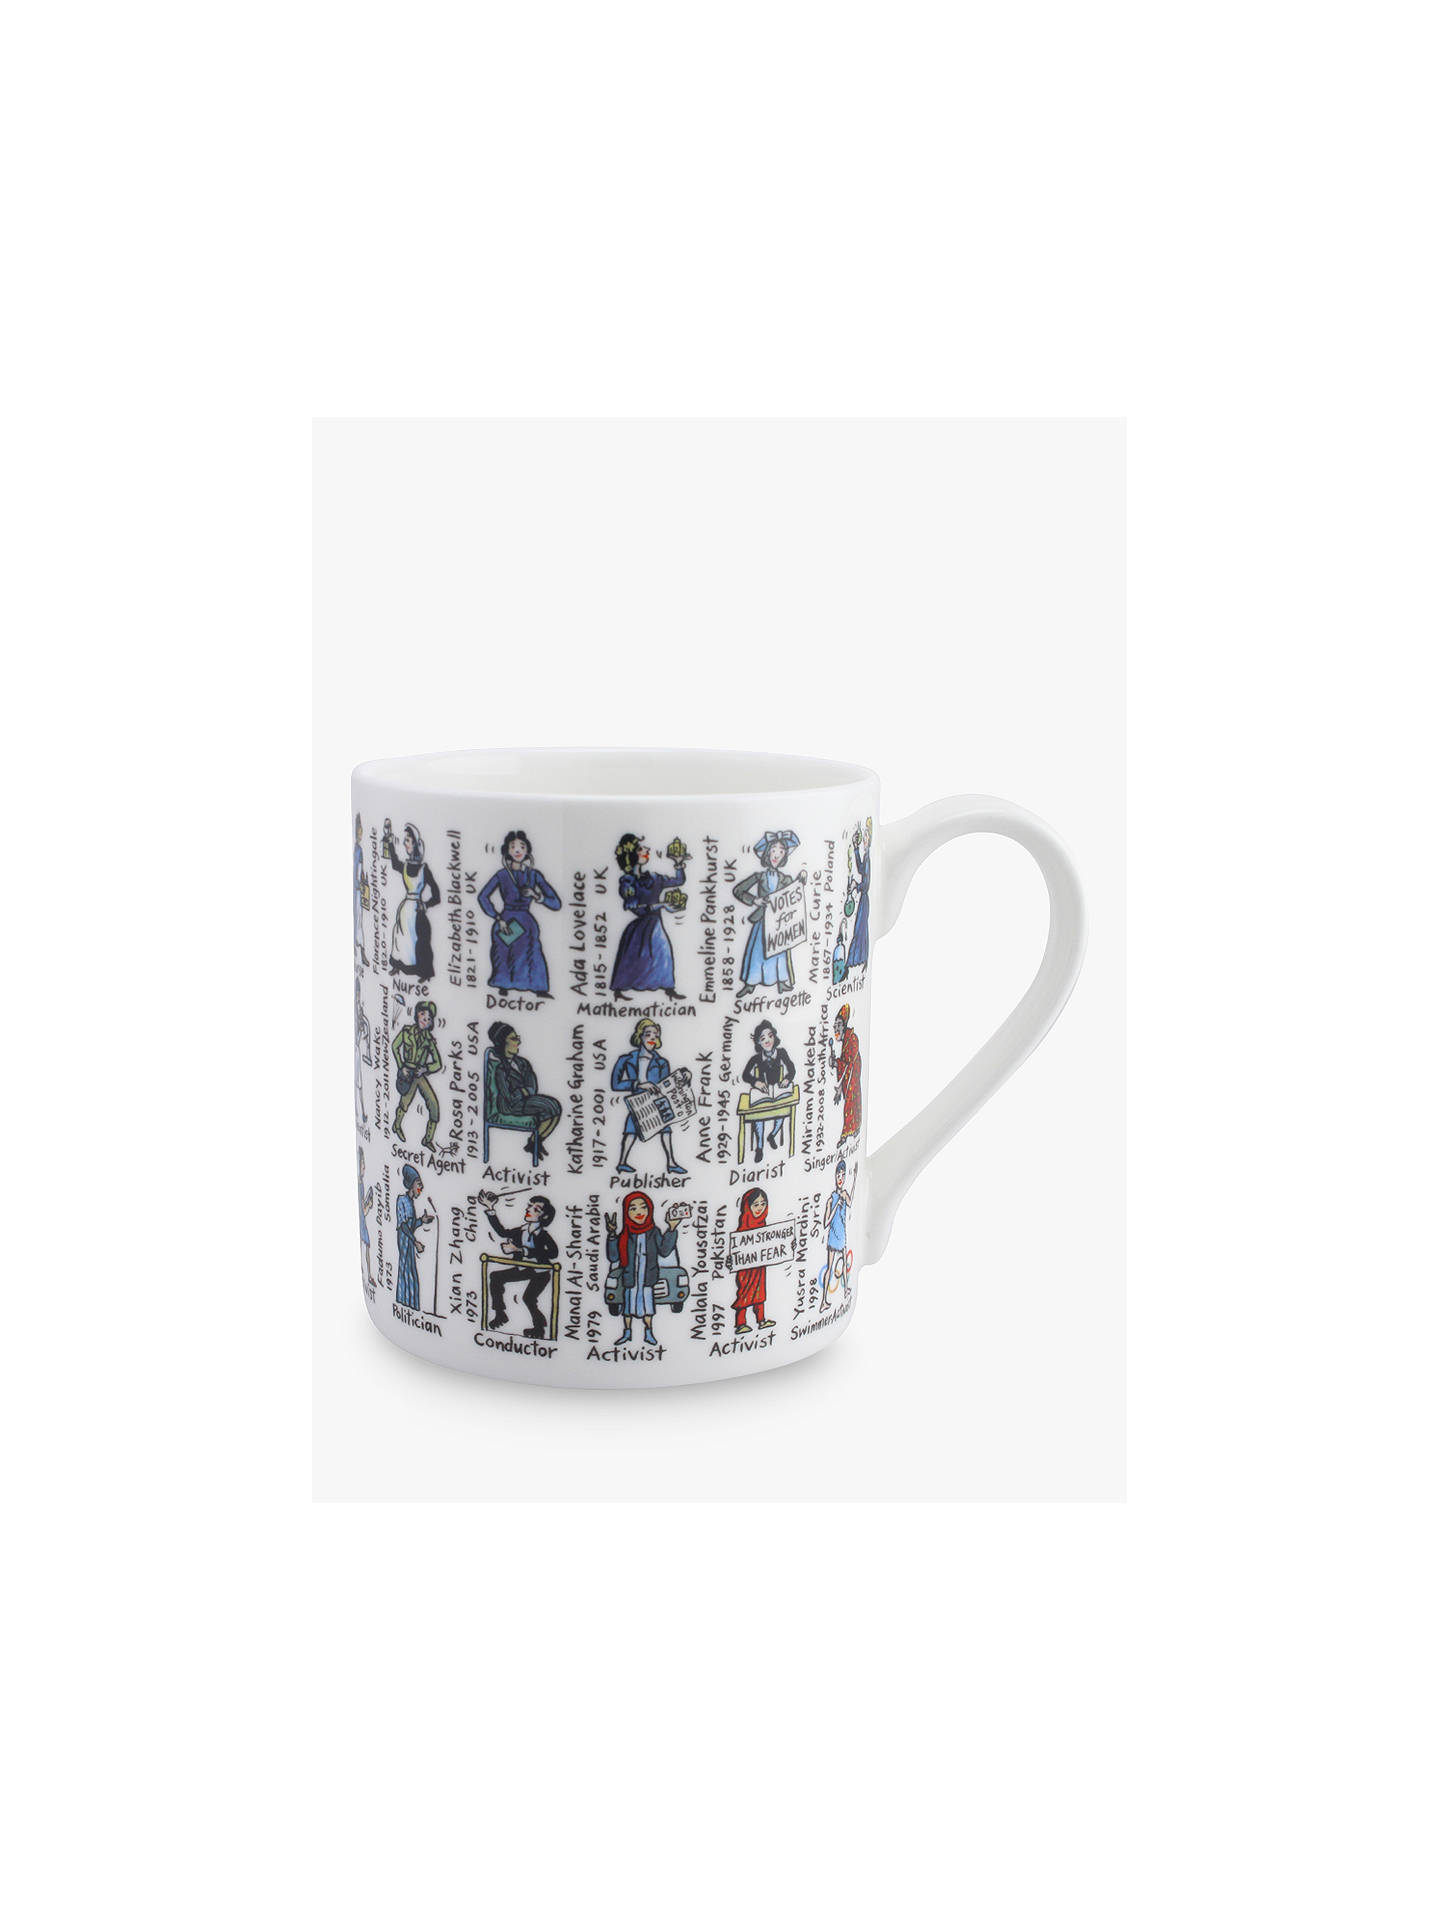 ef884e675a60 Buy McLaggan Smith Women Who Changed The World Mug, 350ml Online at  johnlewis.com ...